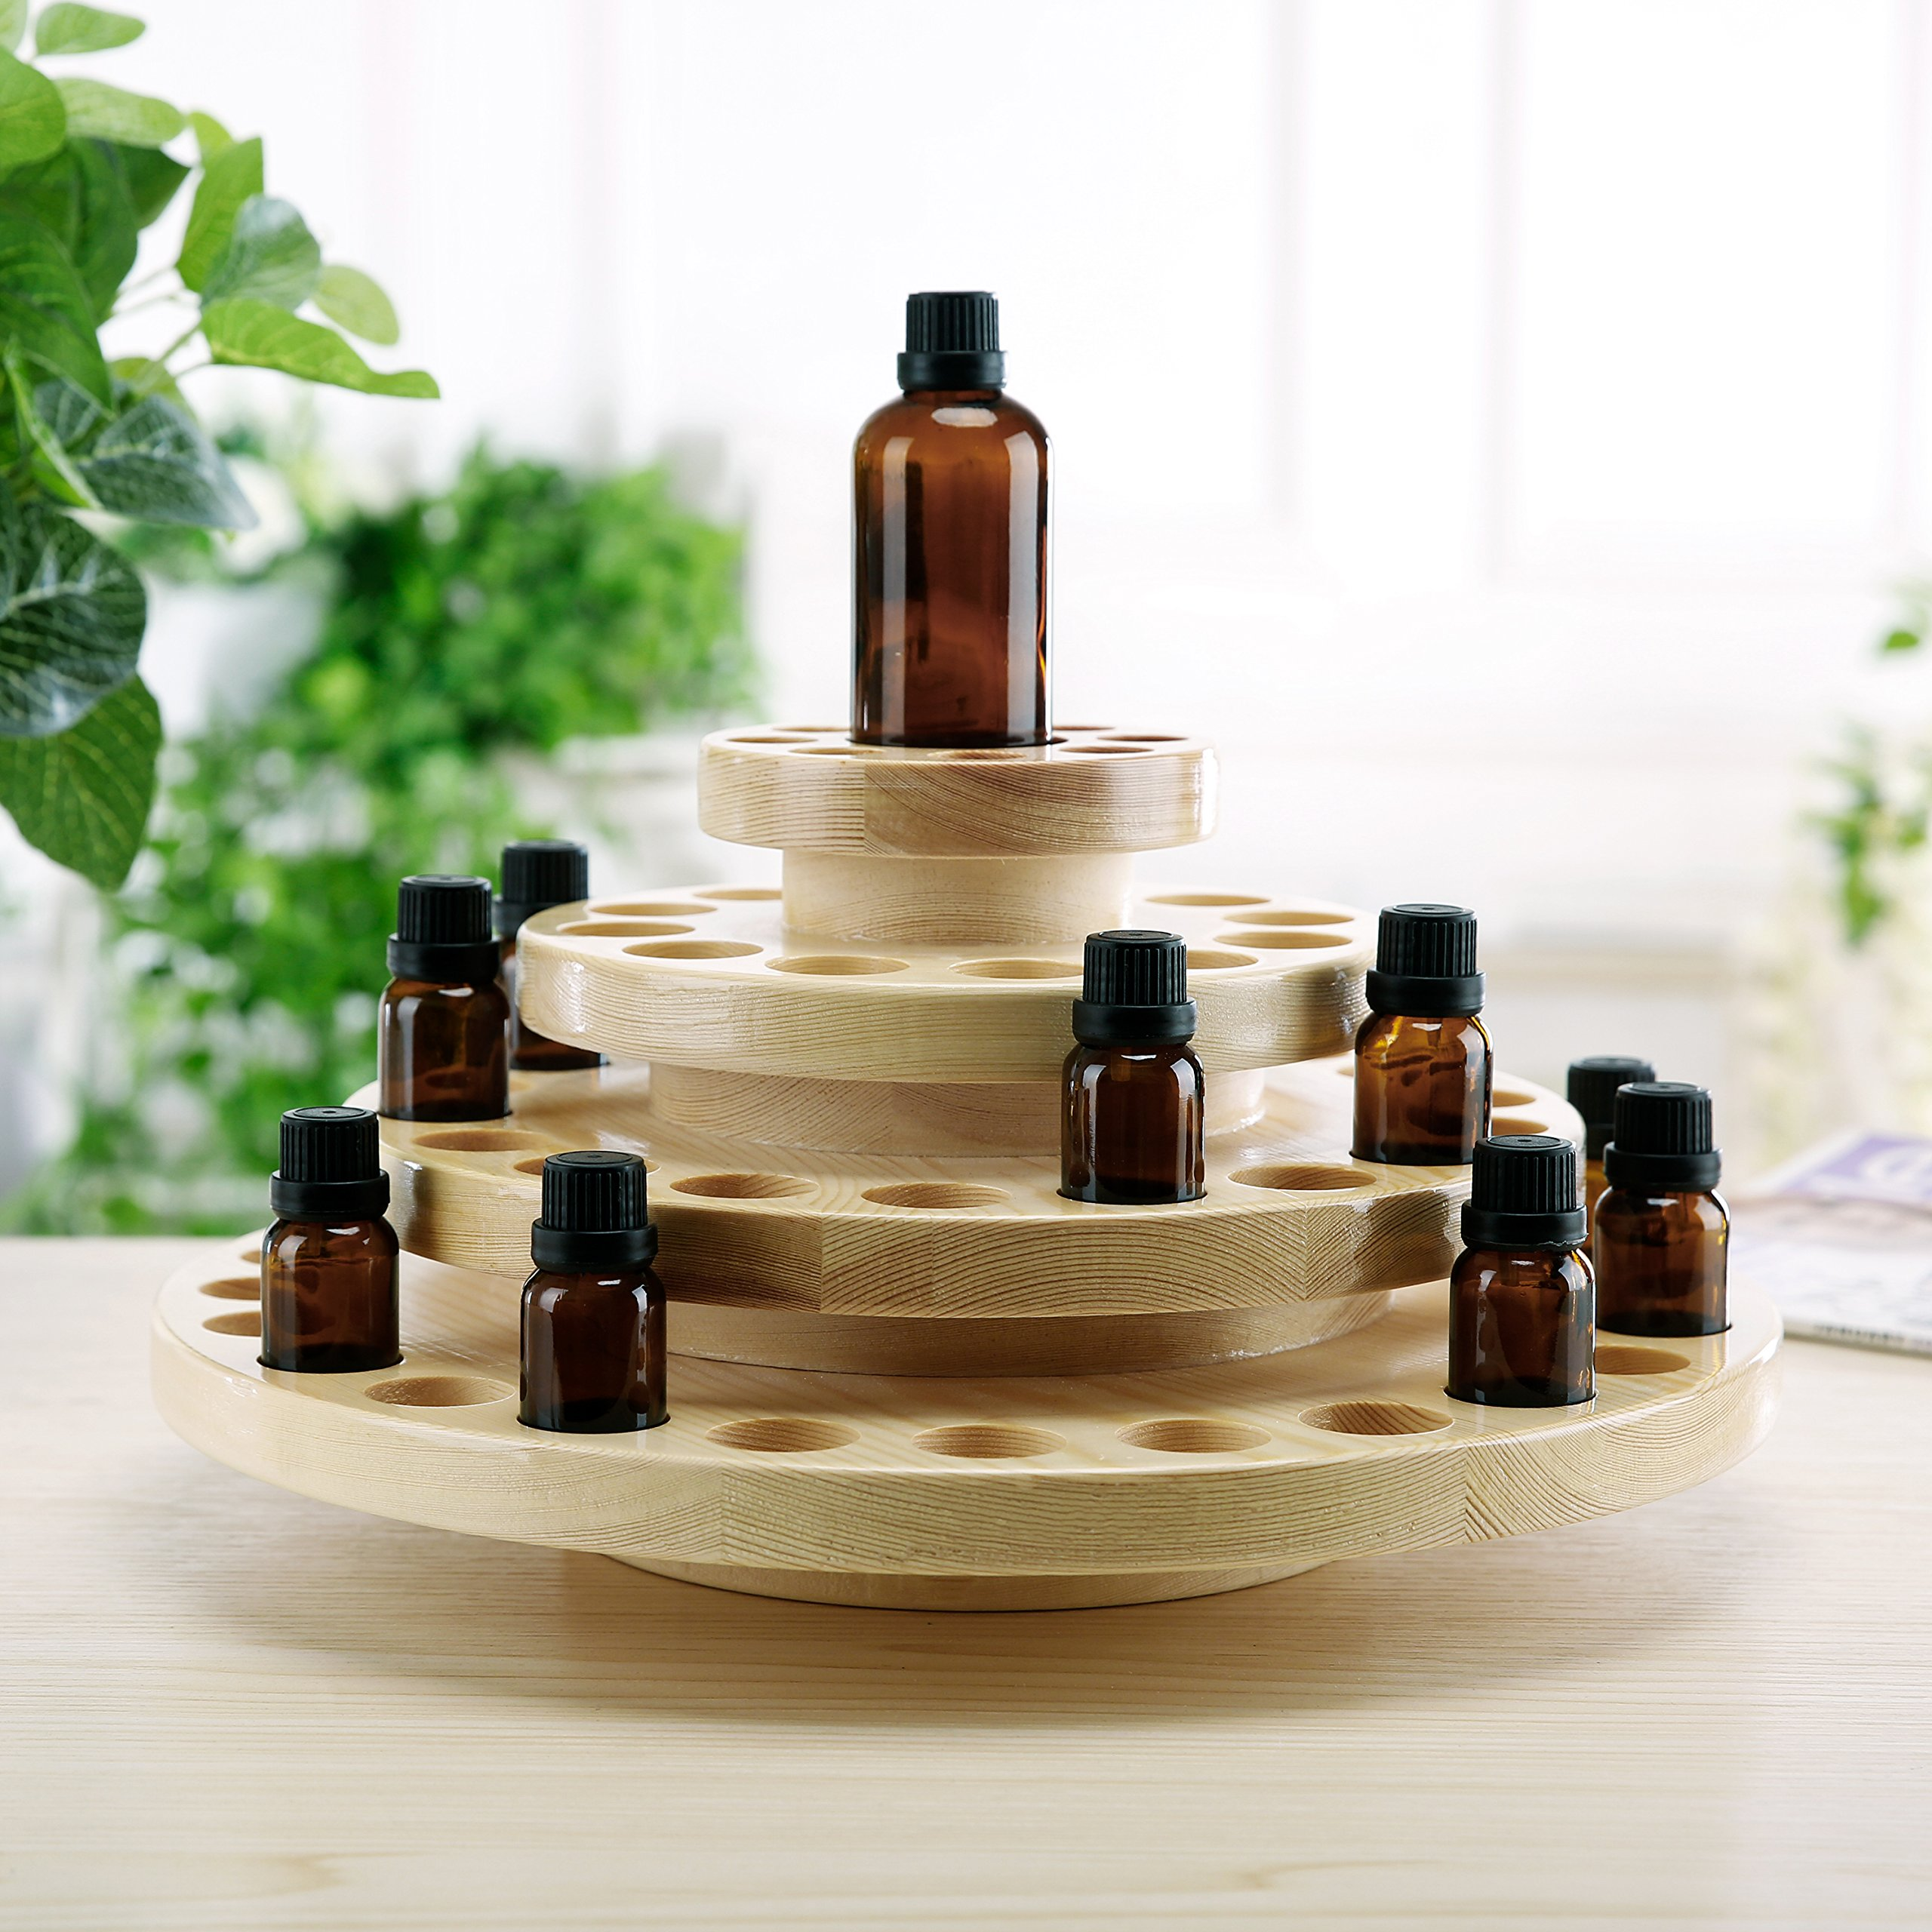 4 Tier Natural Wood Round Rotating Essential Oil Bottles Storage Display Rack by MyGift (Image #3)